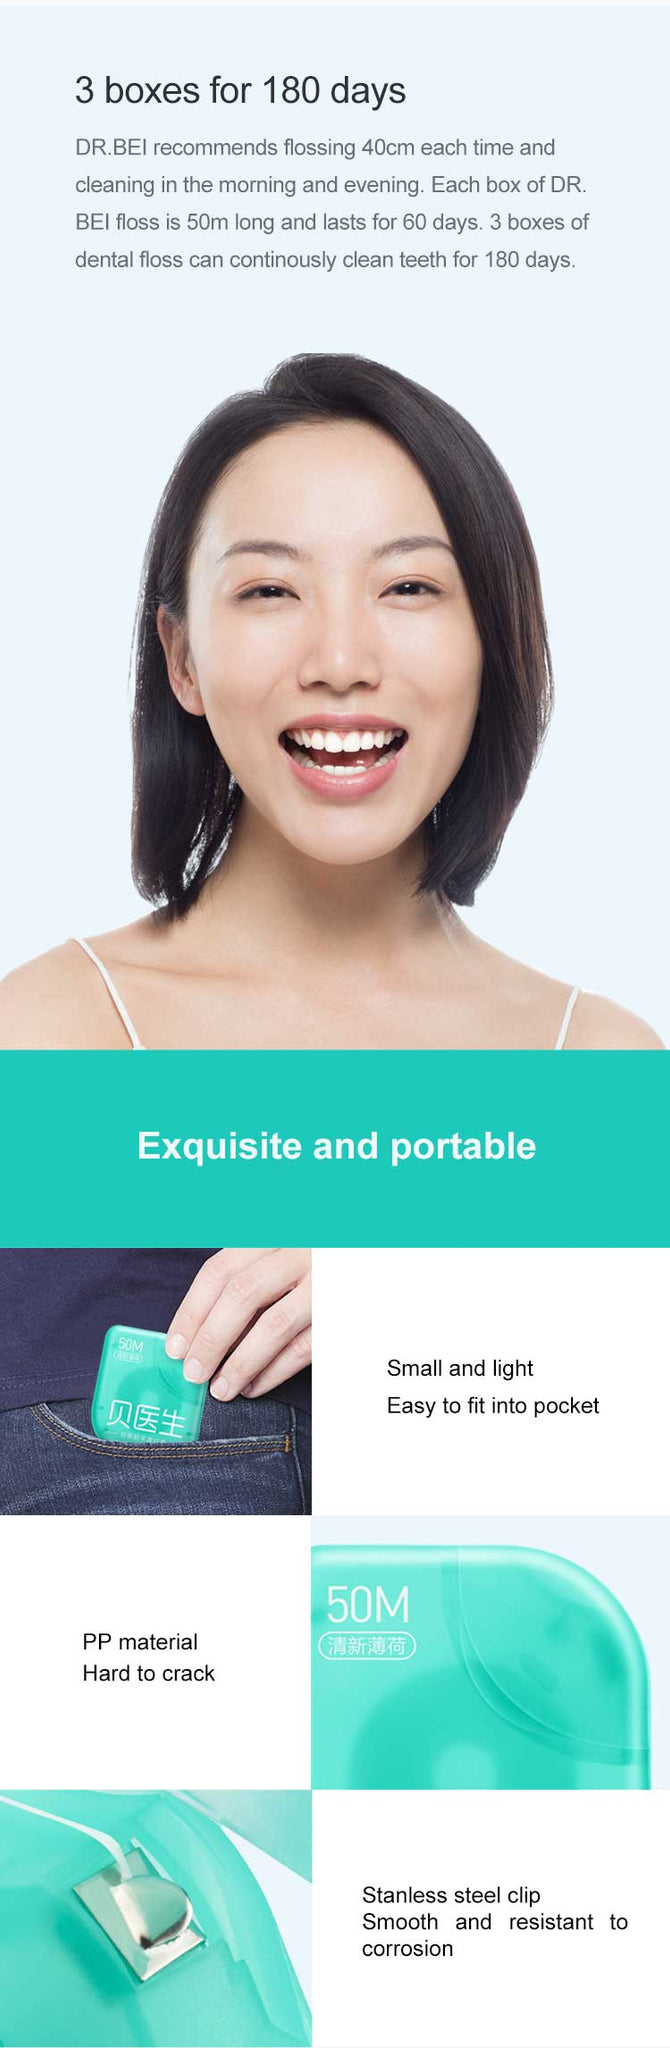 DR.BEI Dental Floss, 50m, 3 cases  Xiaomi Youpin DR.BEI Dental Floss Portable Teeth Clean Flosser Toothpicks Dental Oral Care Teeth Hygiene Soft Flosser 50M /Box Cleaning Tools